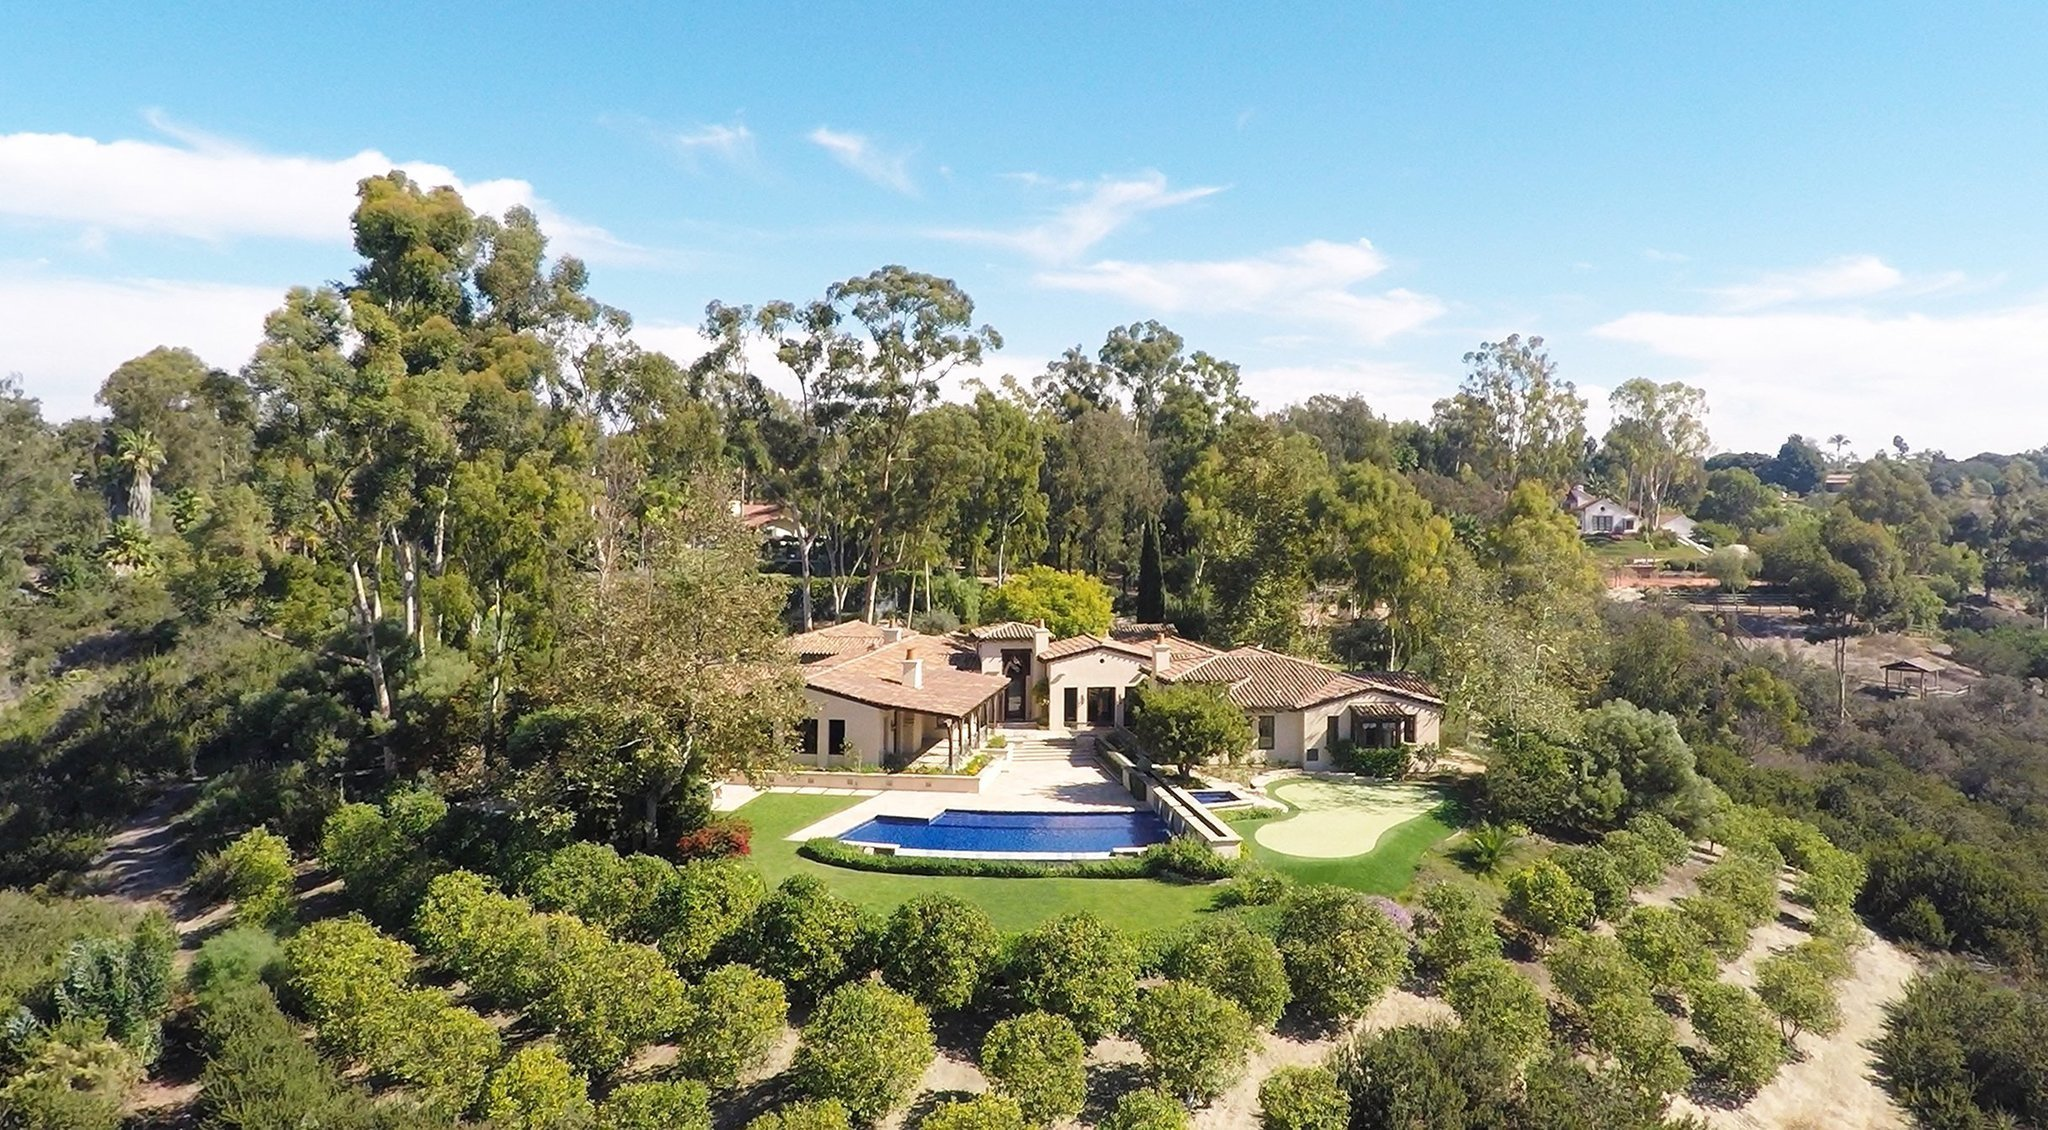 Former Pga Champion Phil Mickelson Has Listed His Rancho